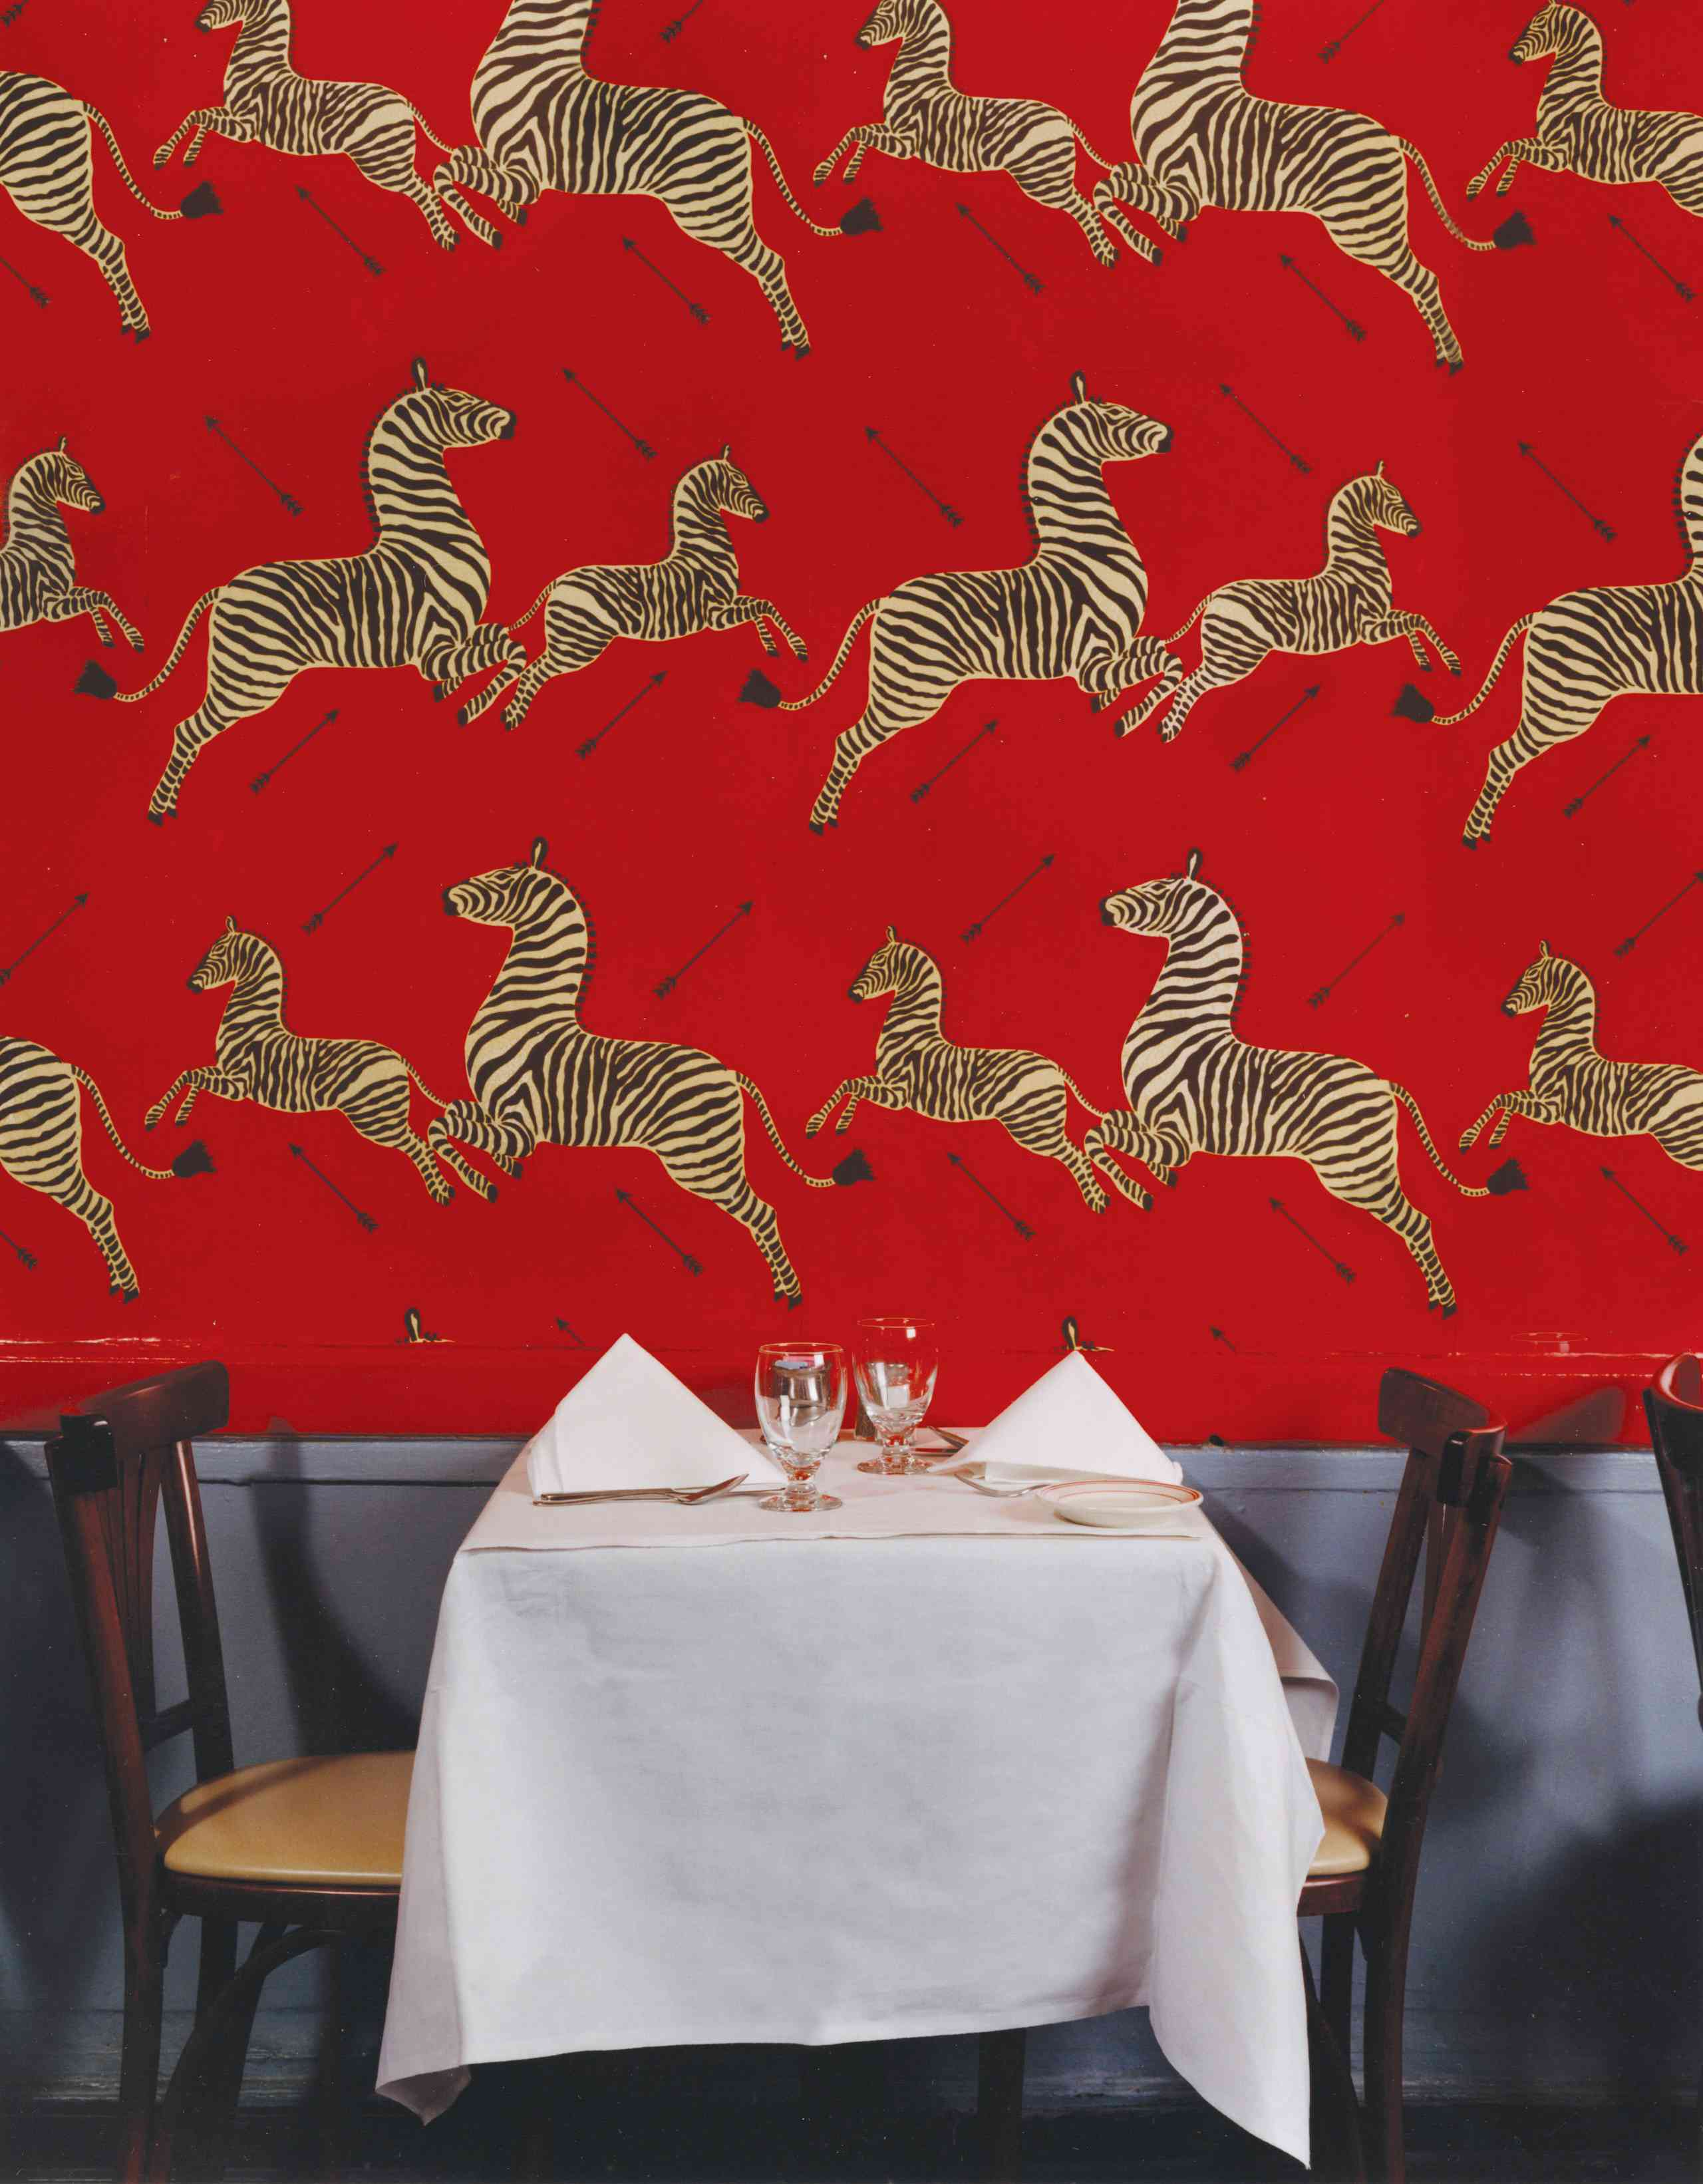 history of scalamandré zebras wallpaper - red wallpaper install in gino's restaurant